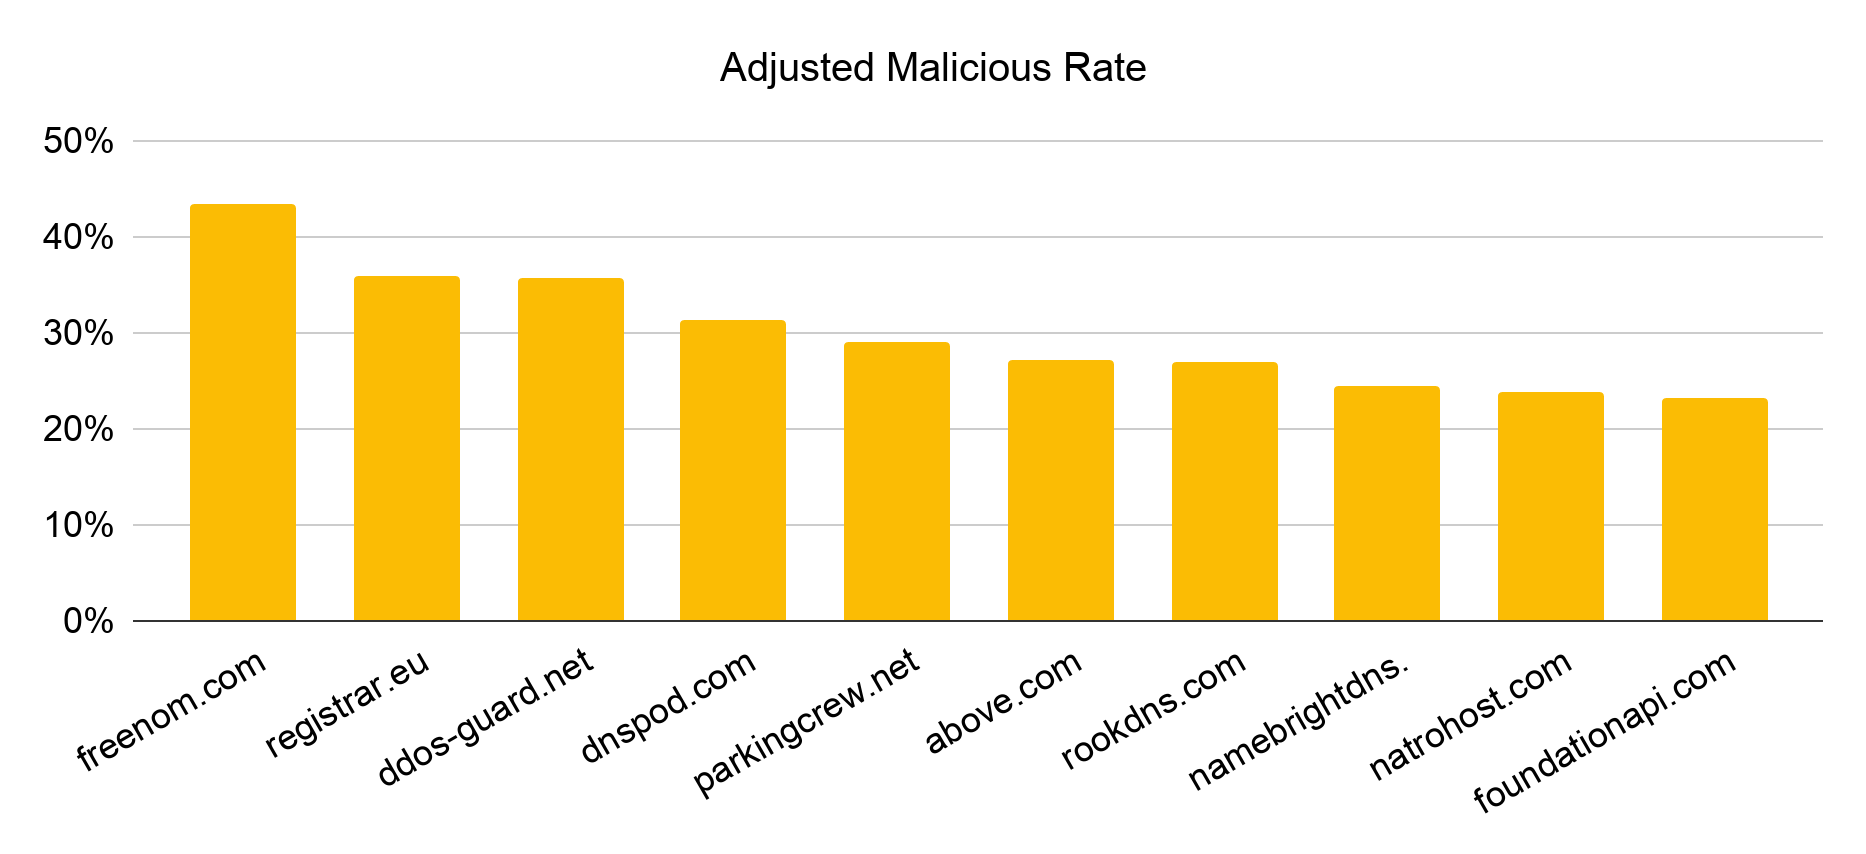 Ranked by adjusted malicious rate, the top 10 DNS services most abused by cybersquatting in December 2019 are freenom.com, registrar.eu, ddos-guard.net, dnspod.com, parkingcrew.net, above.com, rookdns.com, namebrightdns, natrohost.com and foundationapi.com